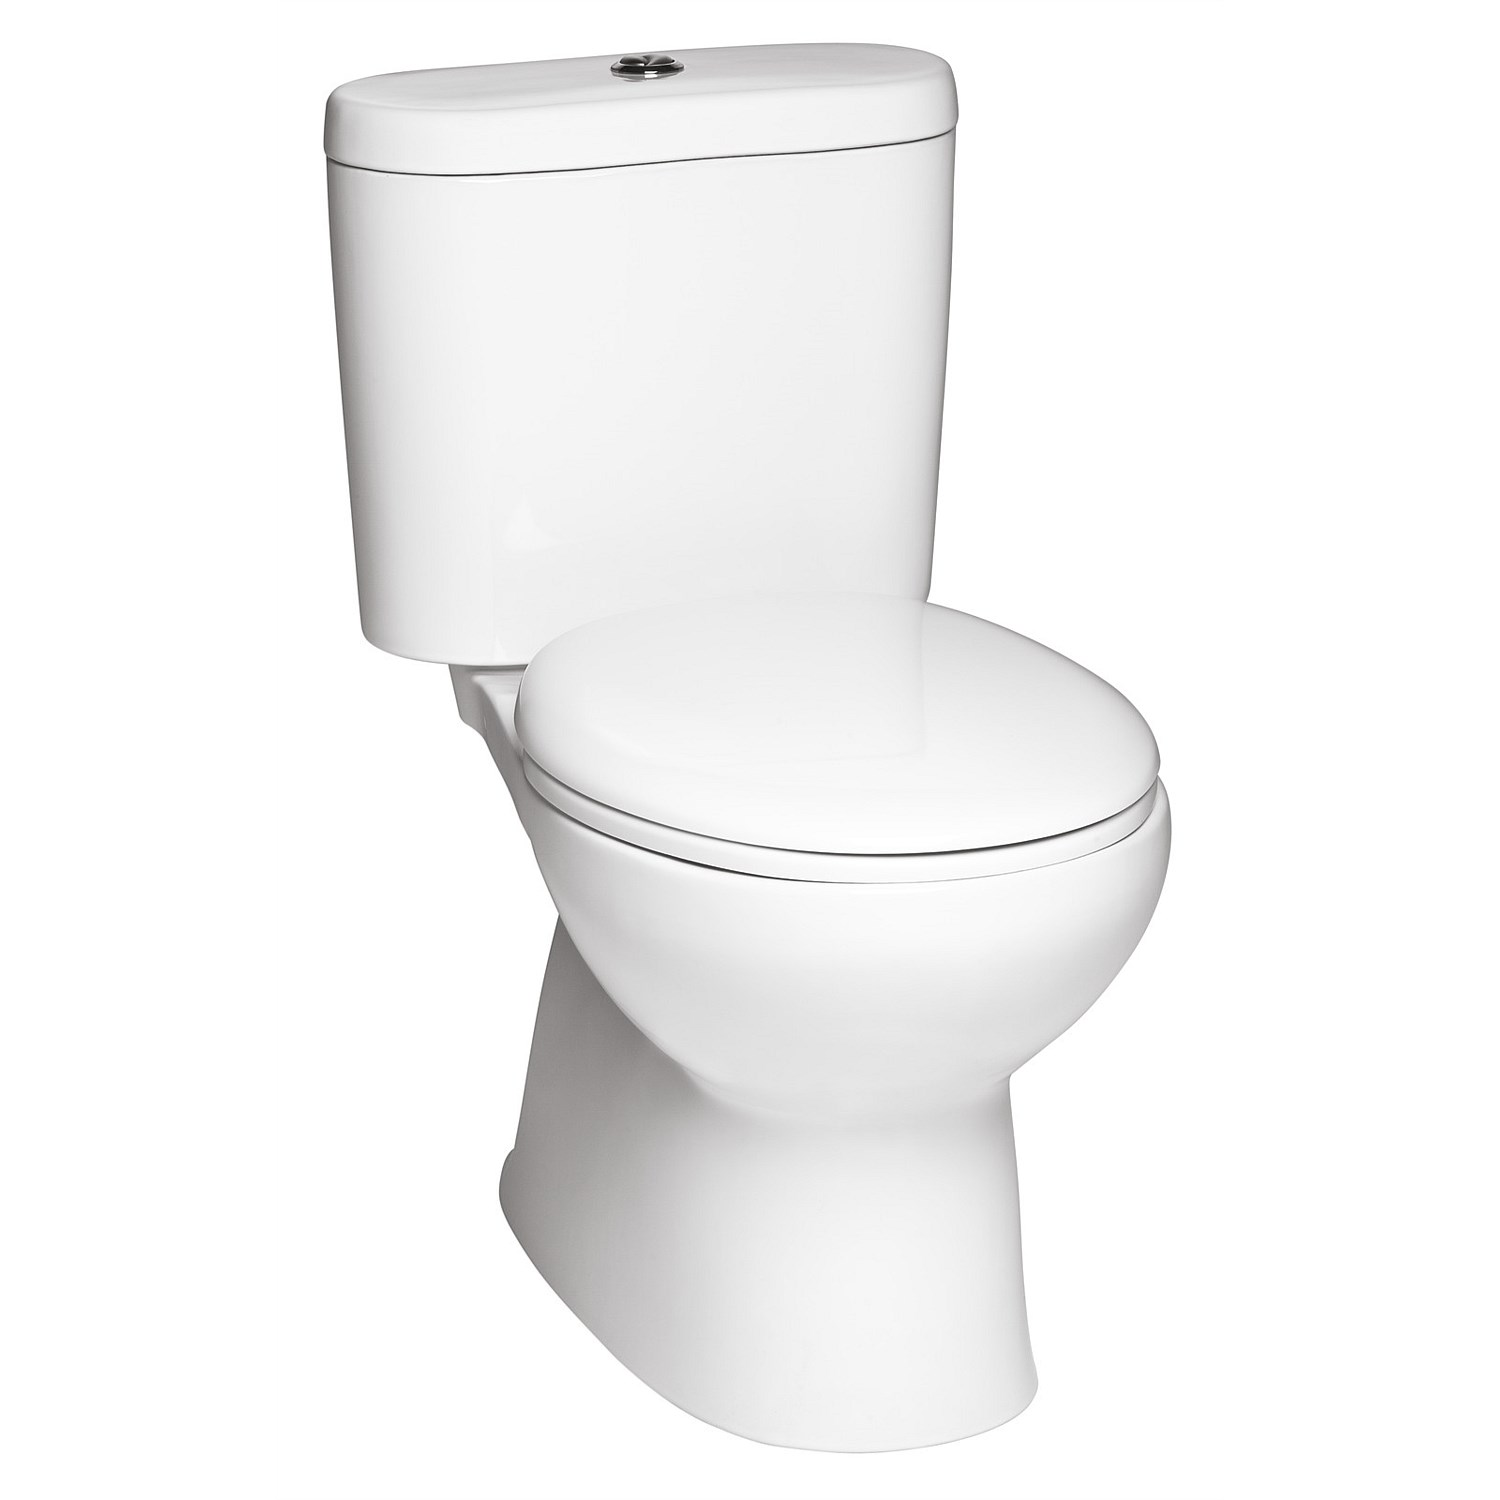 Toilet Suites - Toto Valdes Close-Coupled Toilet Suite